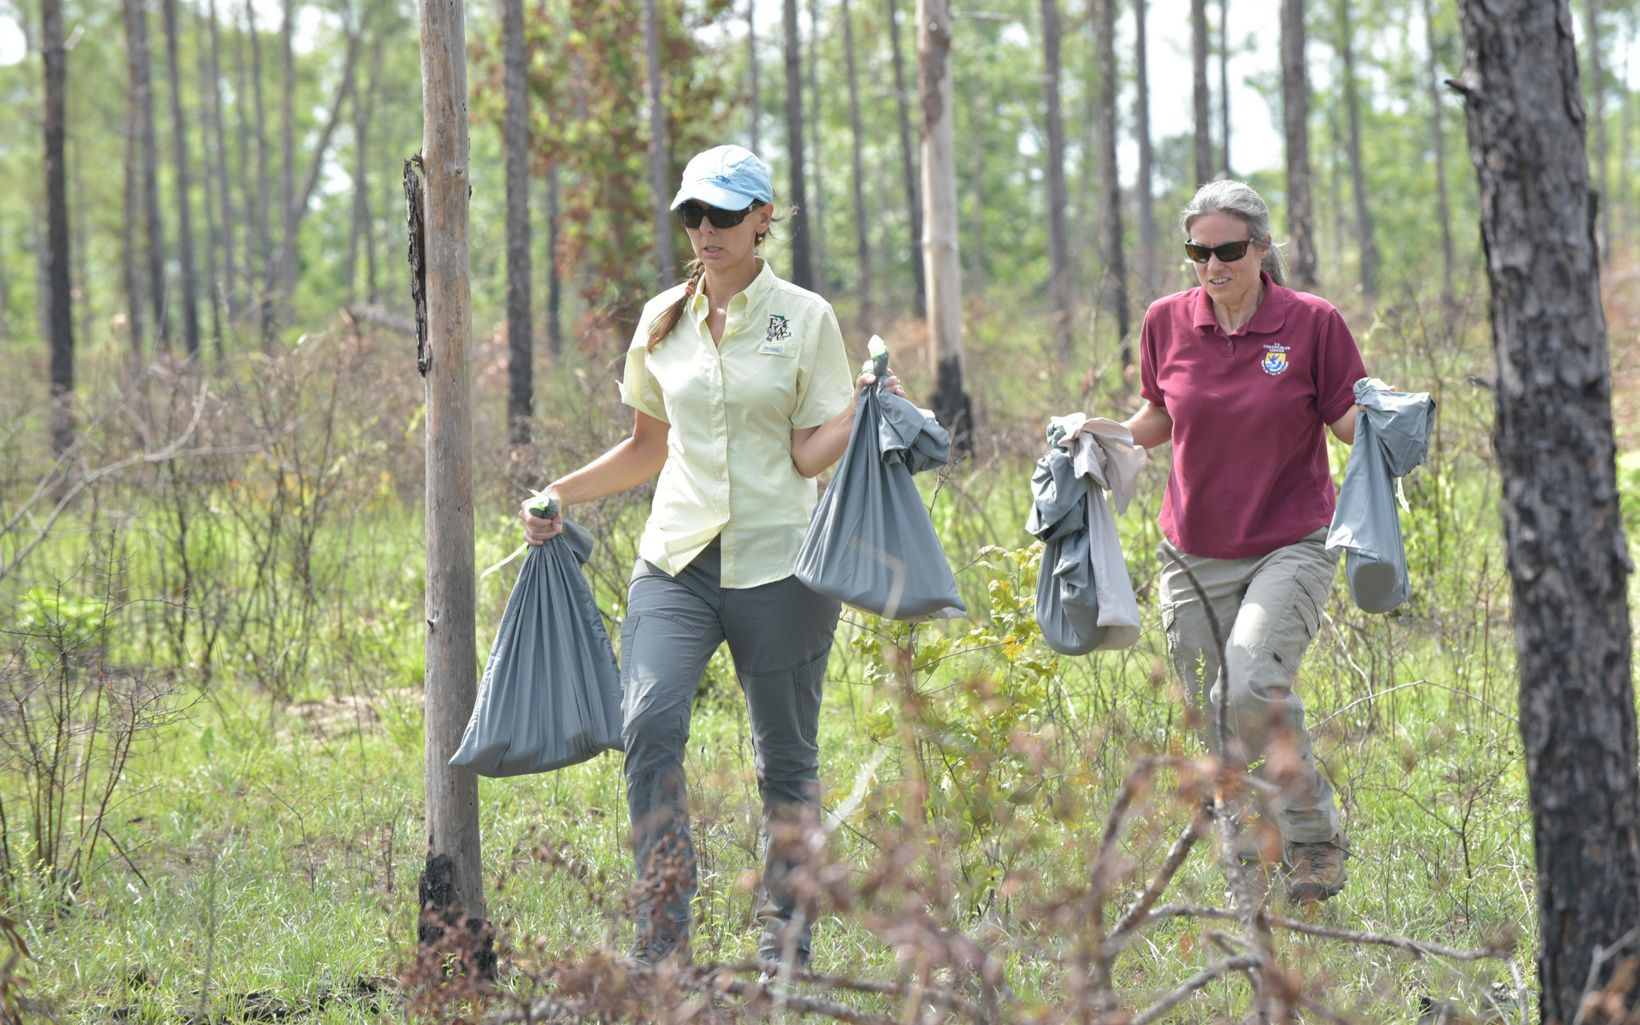 Partners carry the snakes in canvas bags to their release sites on the preserve.